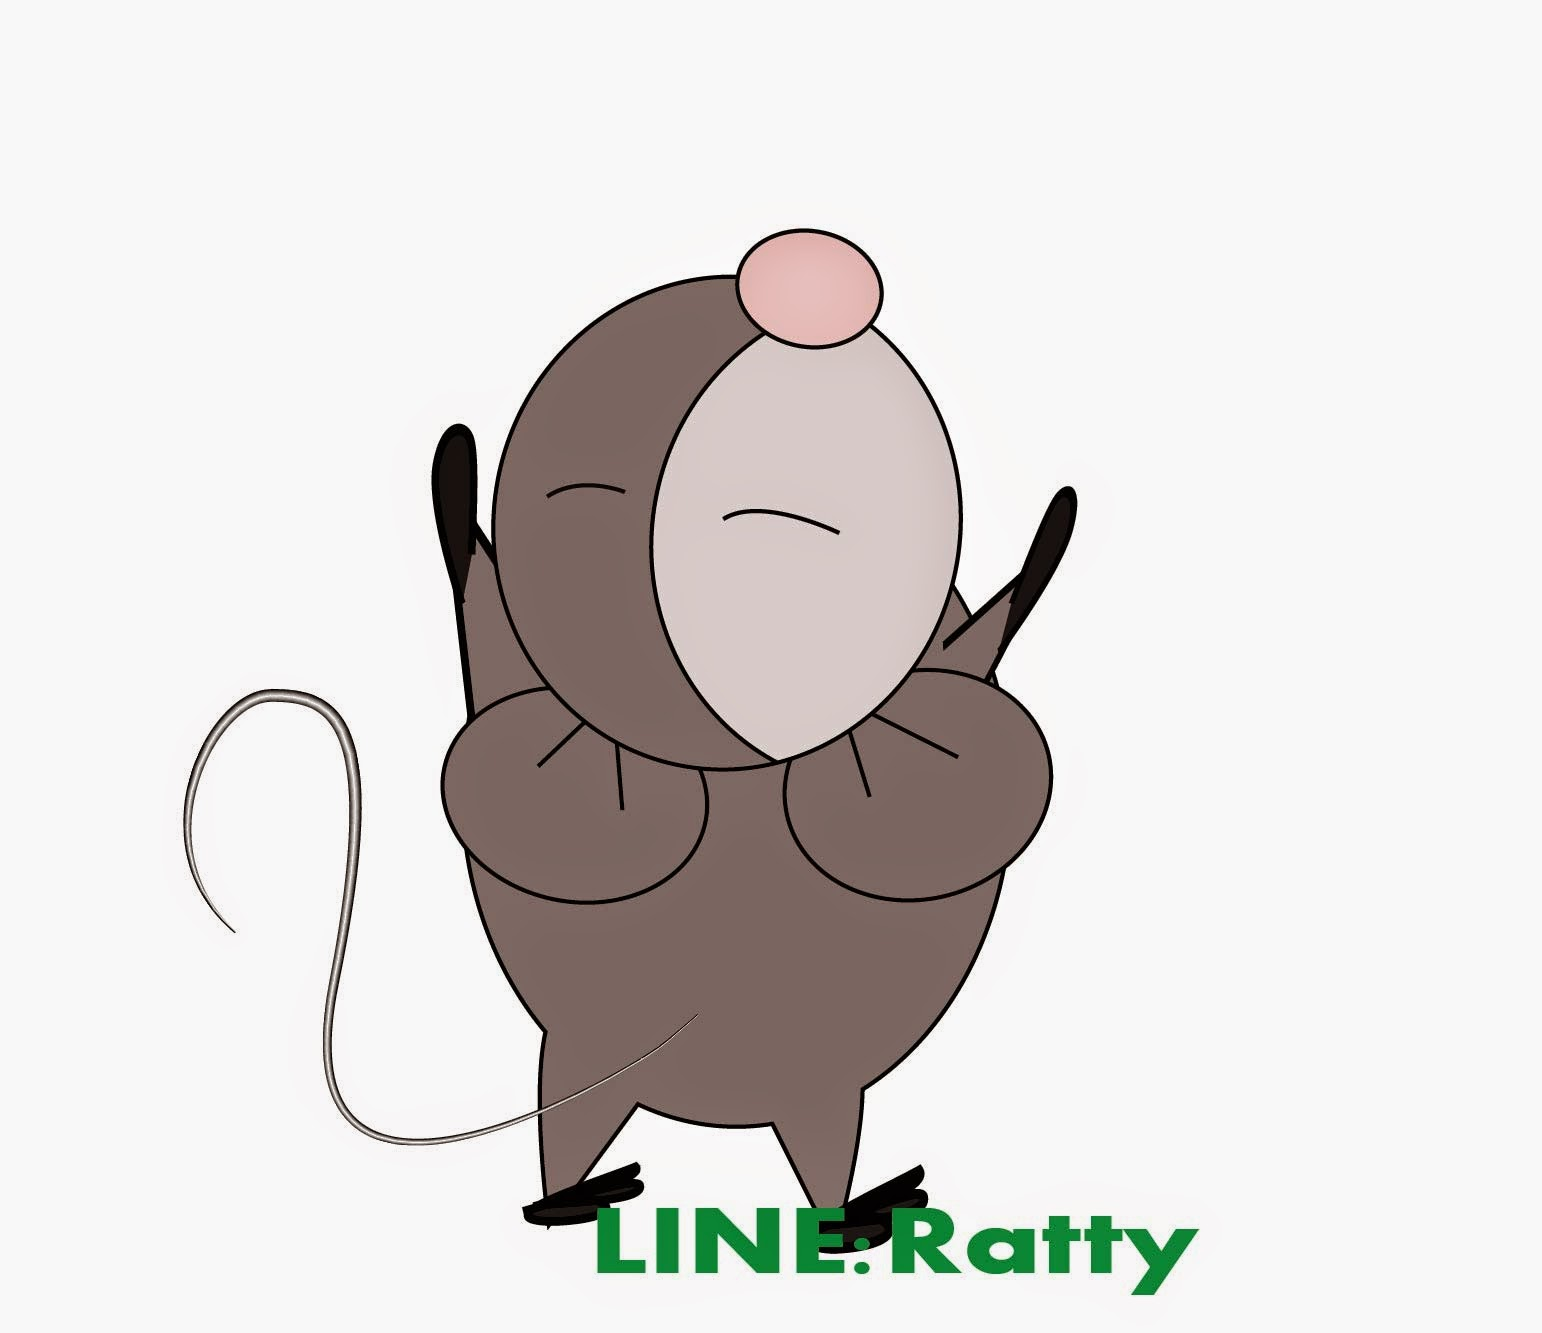 Get line stickers Ratty